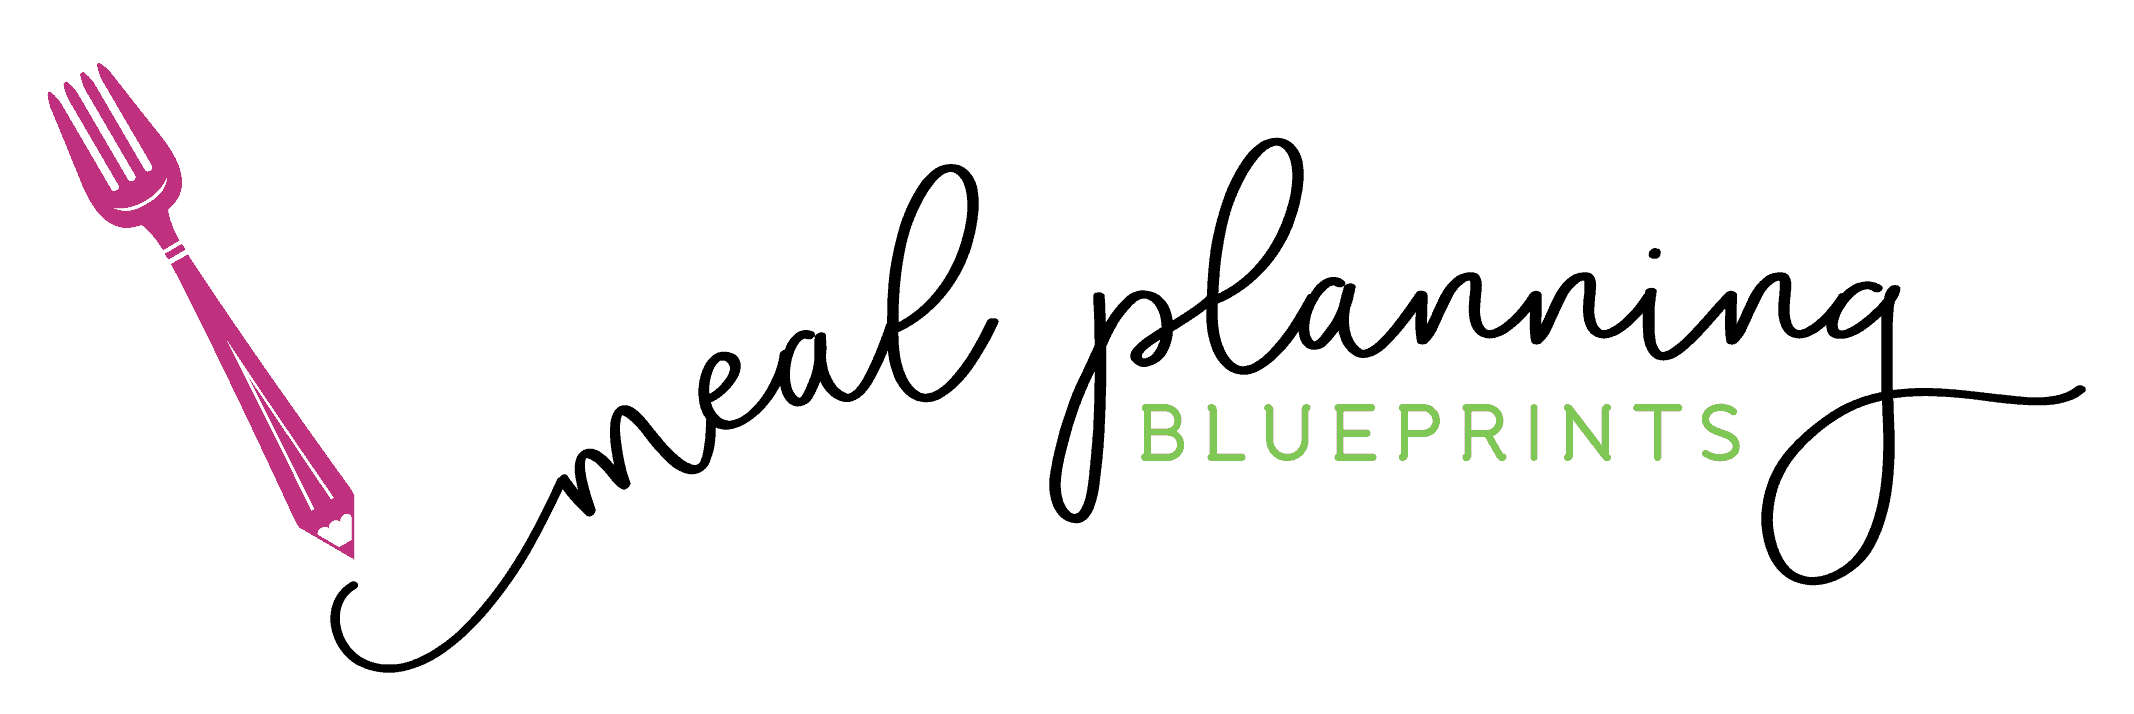 Meal Planning Blueprints